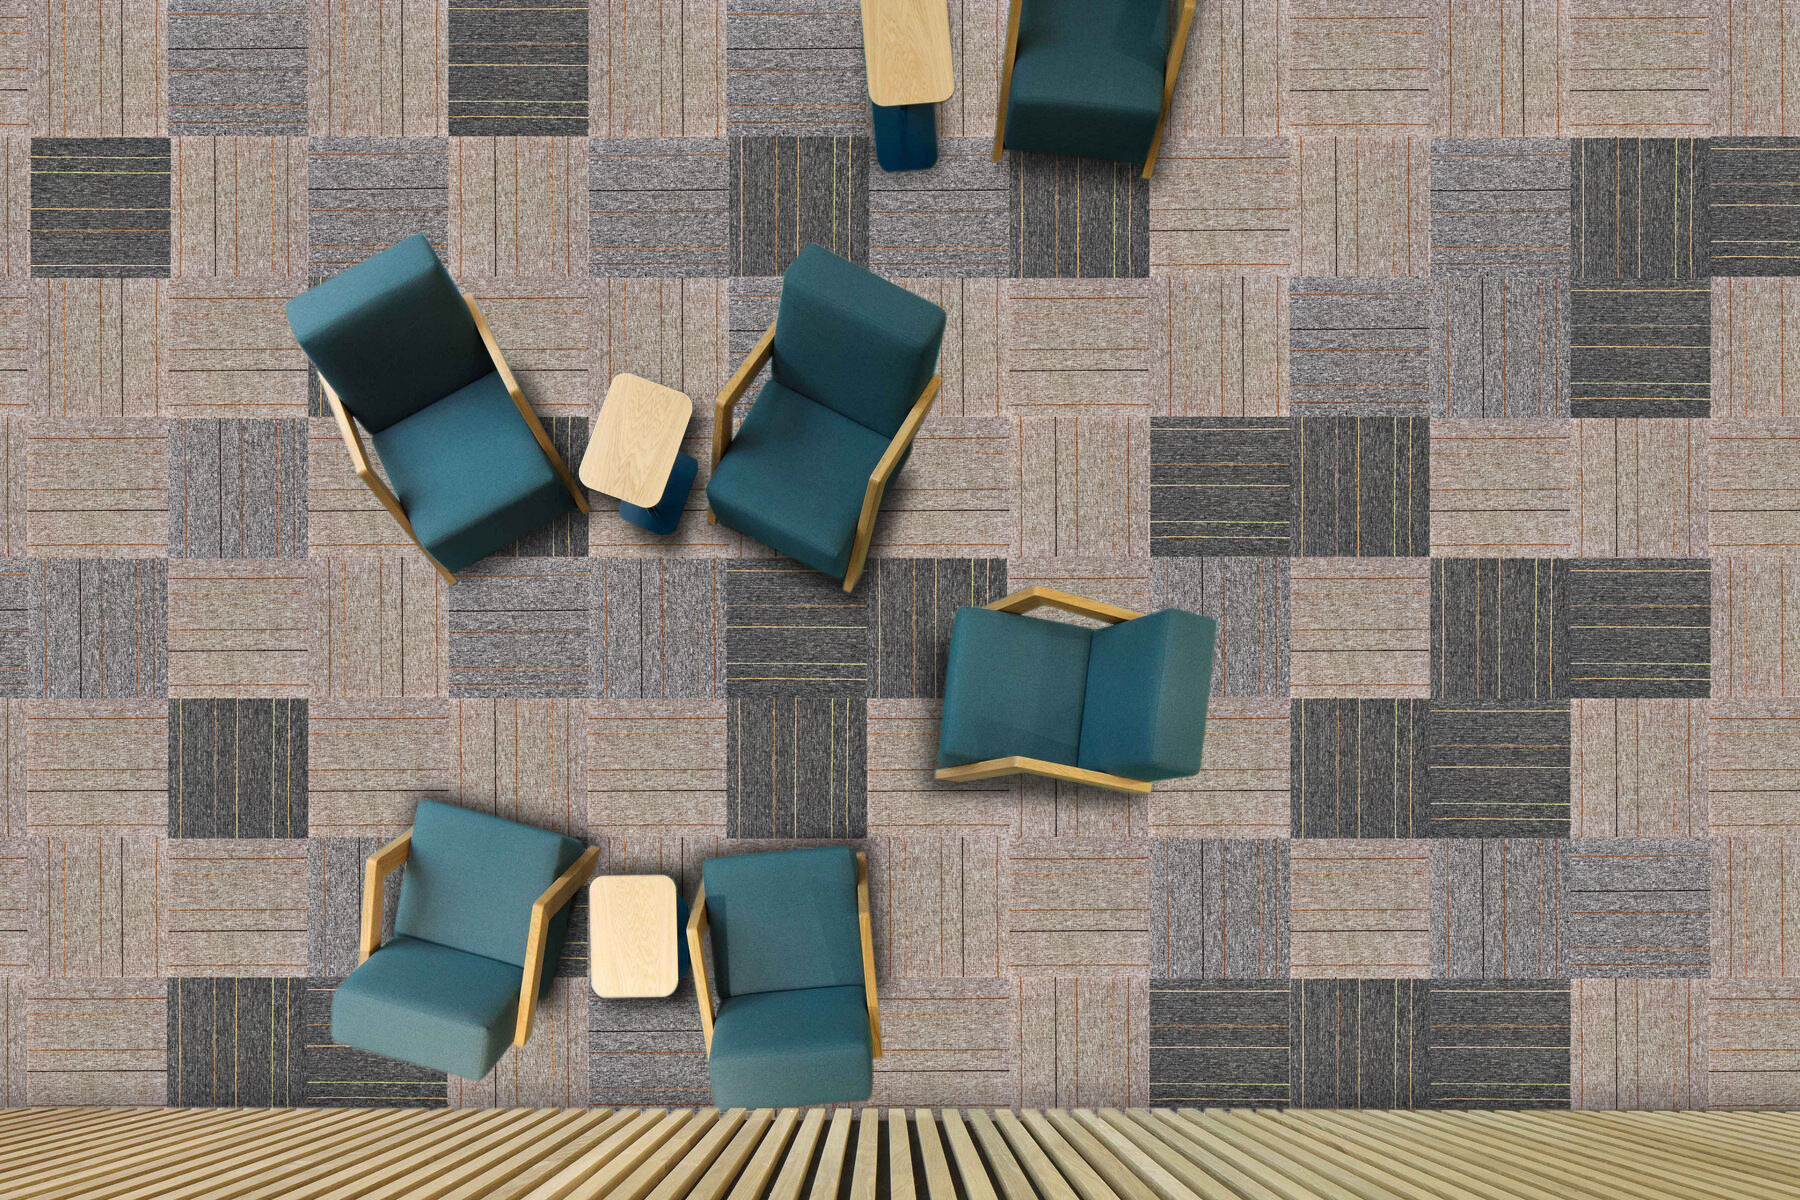 Linear Design Office Carpet Flooring - 50CM x 50CM Carpet Tiles - Squares Rug (Commercial Carpet Tile Carpet) - Wall-to-Wall Office Carpet